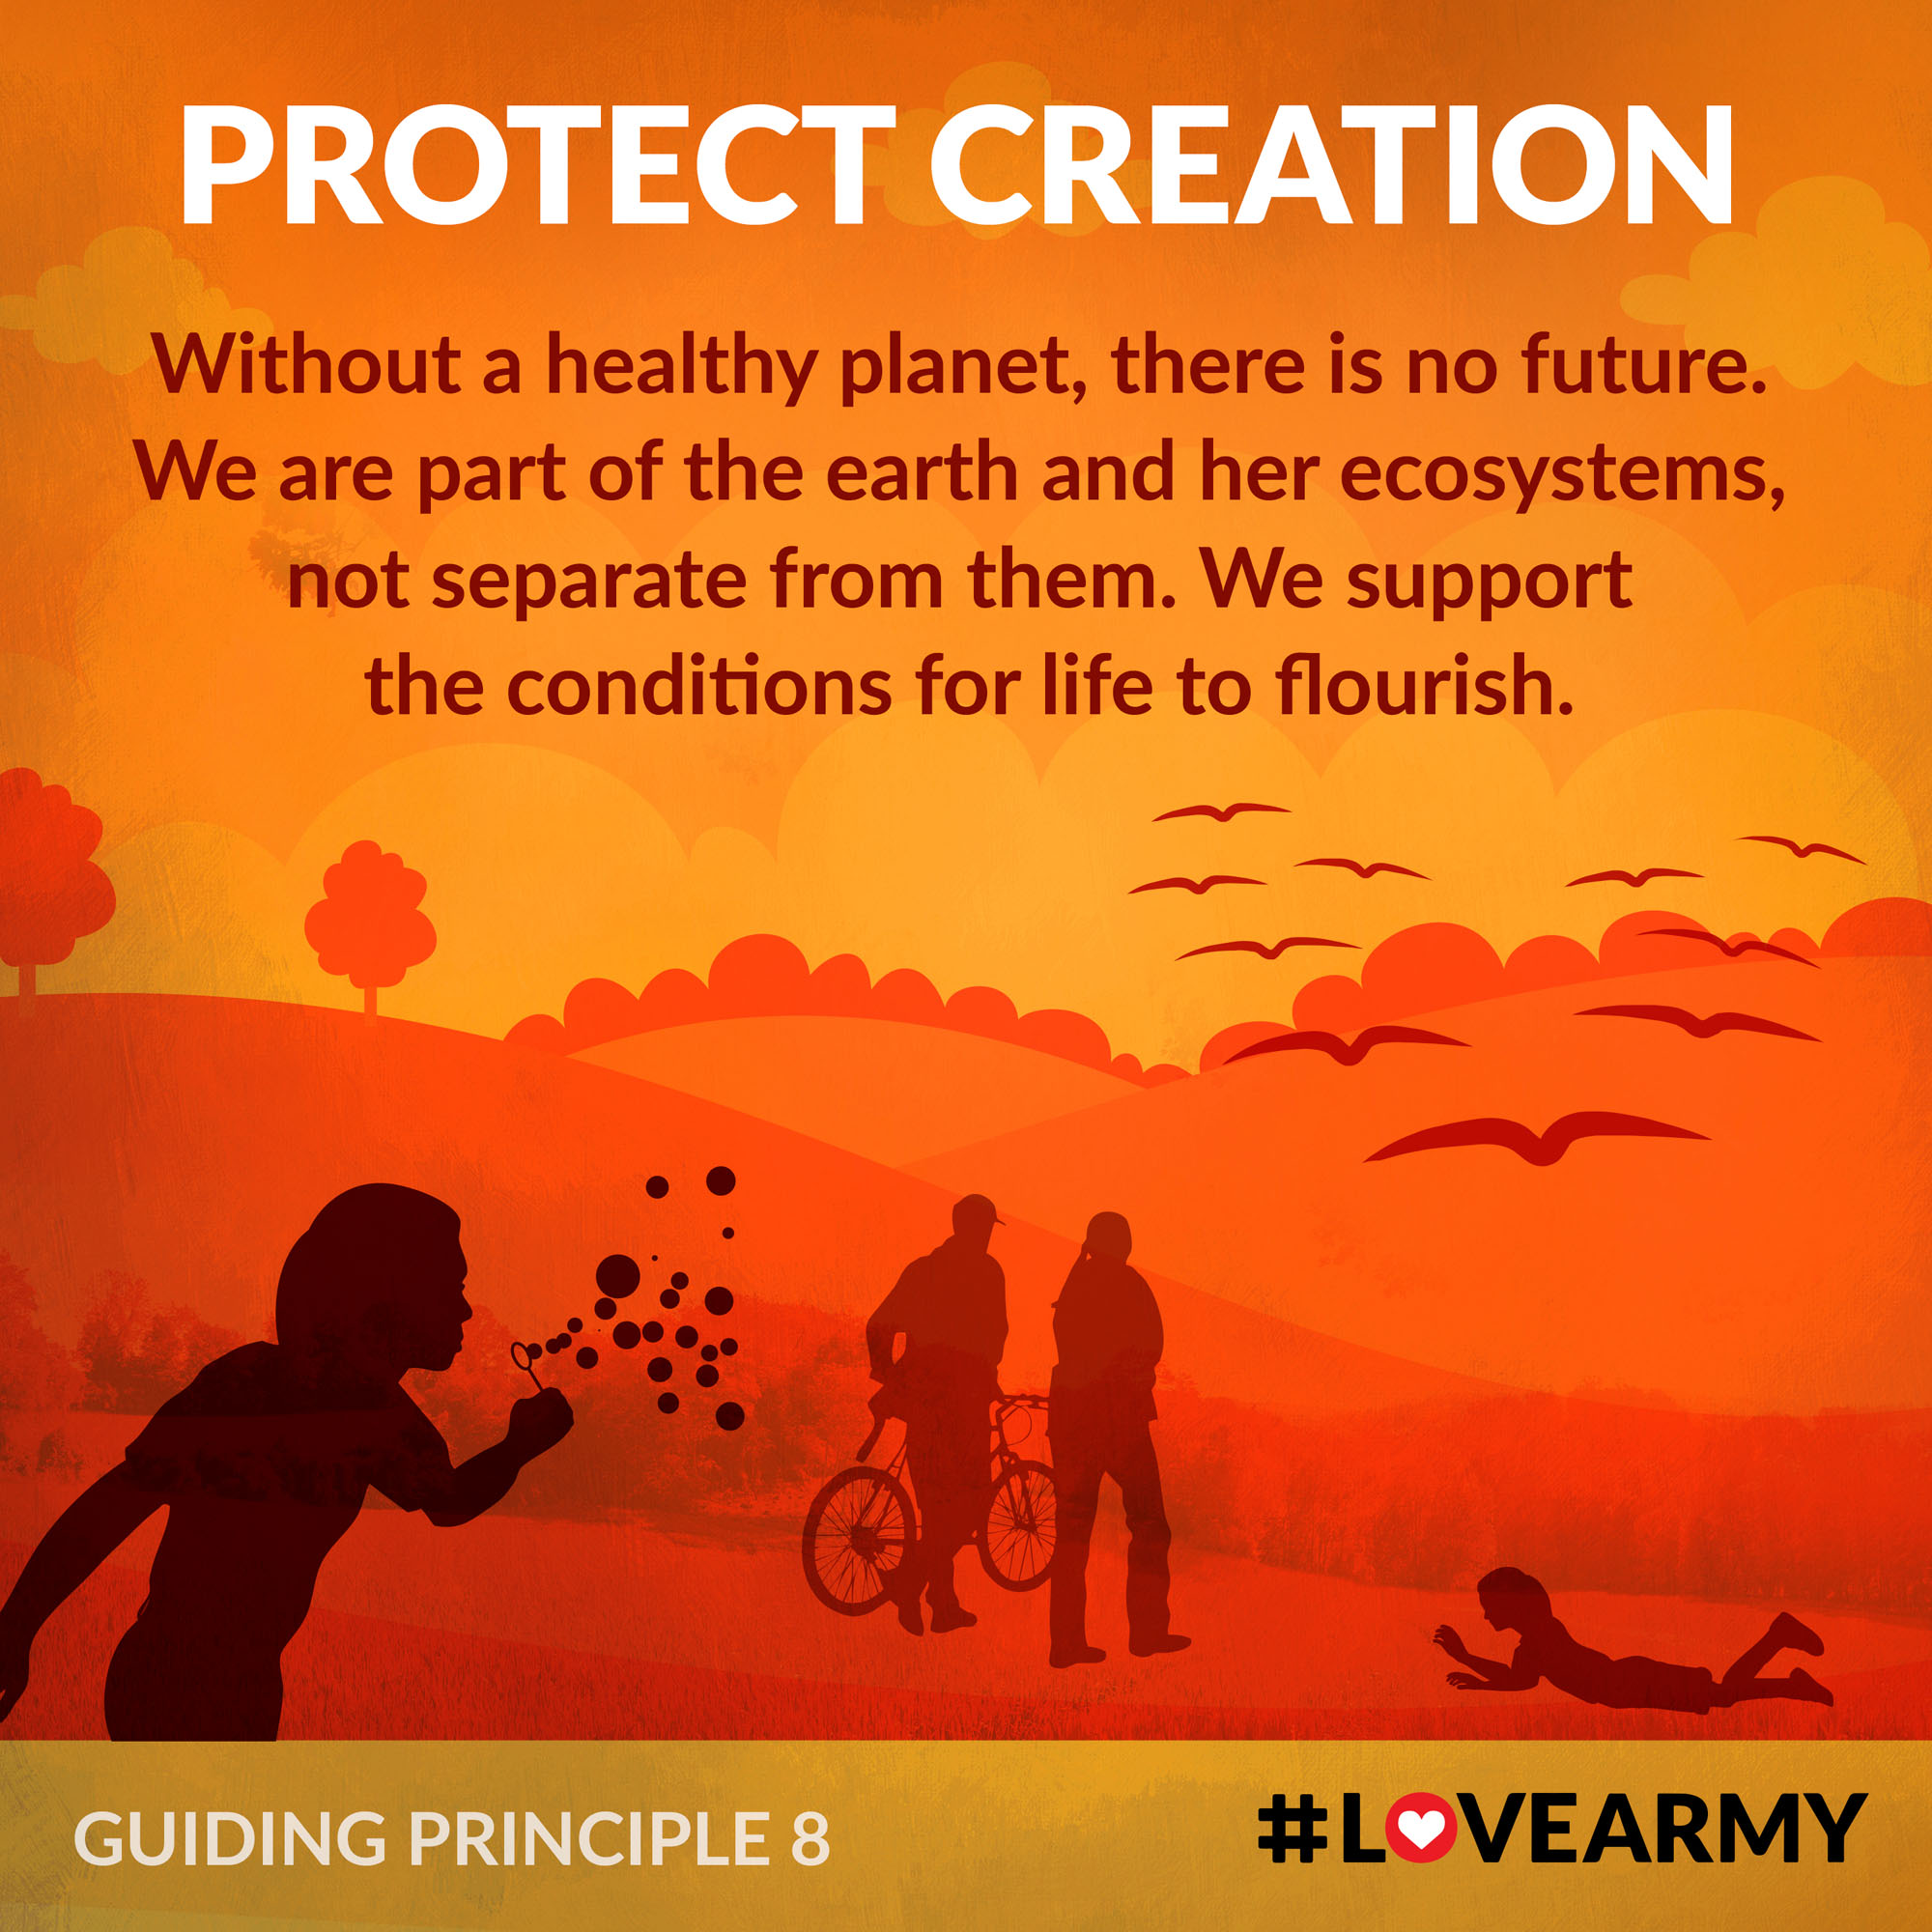 Protect Creation